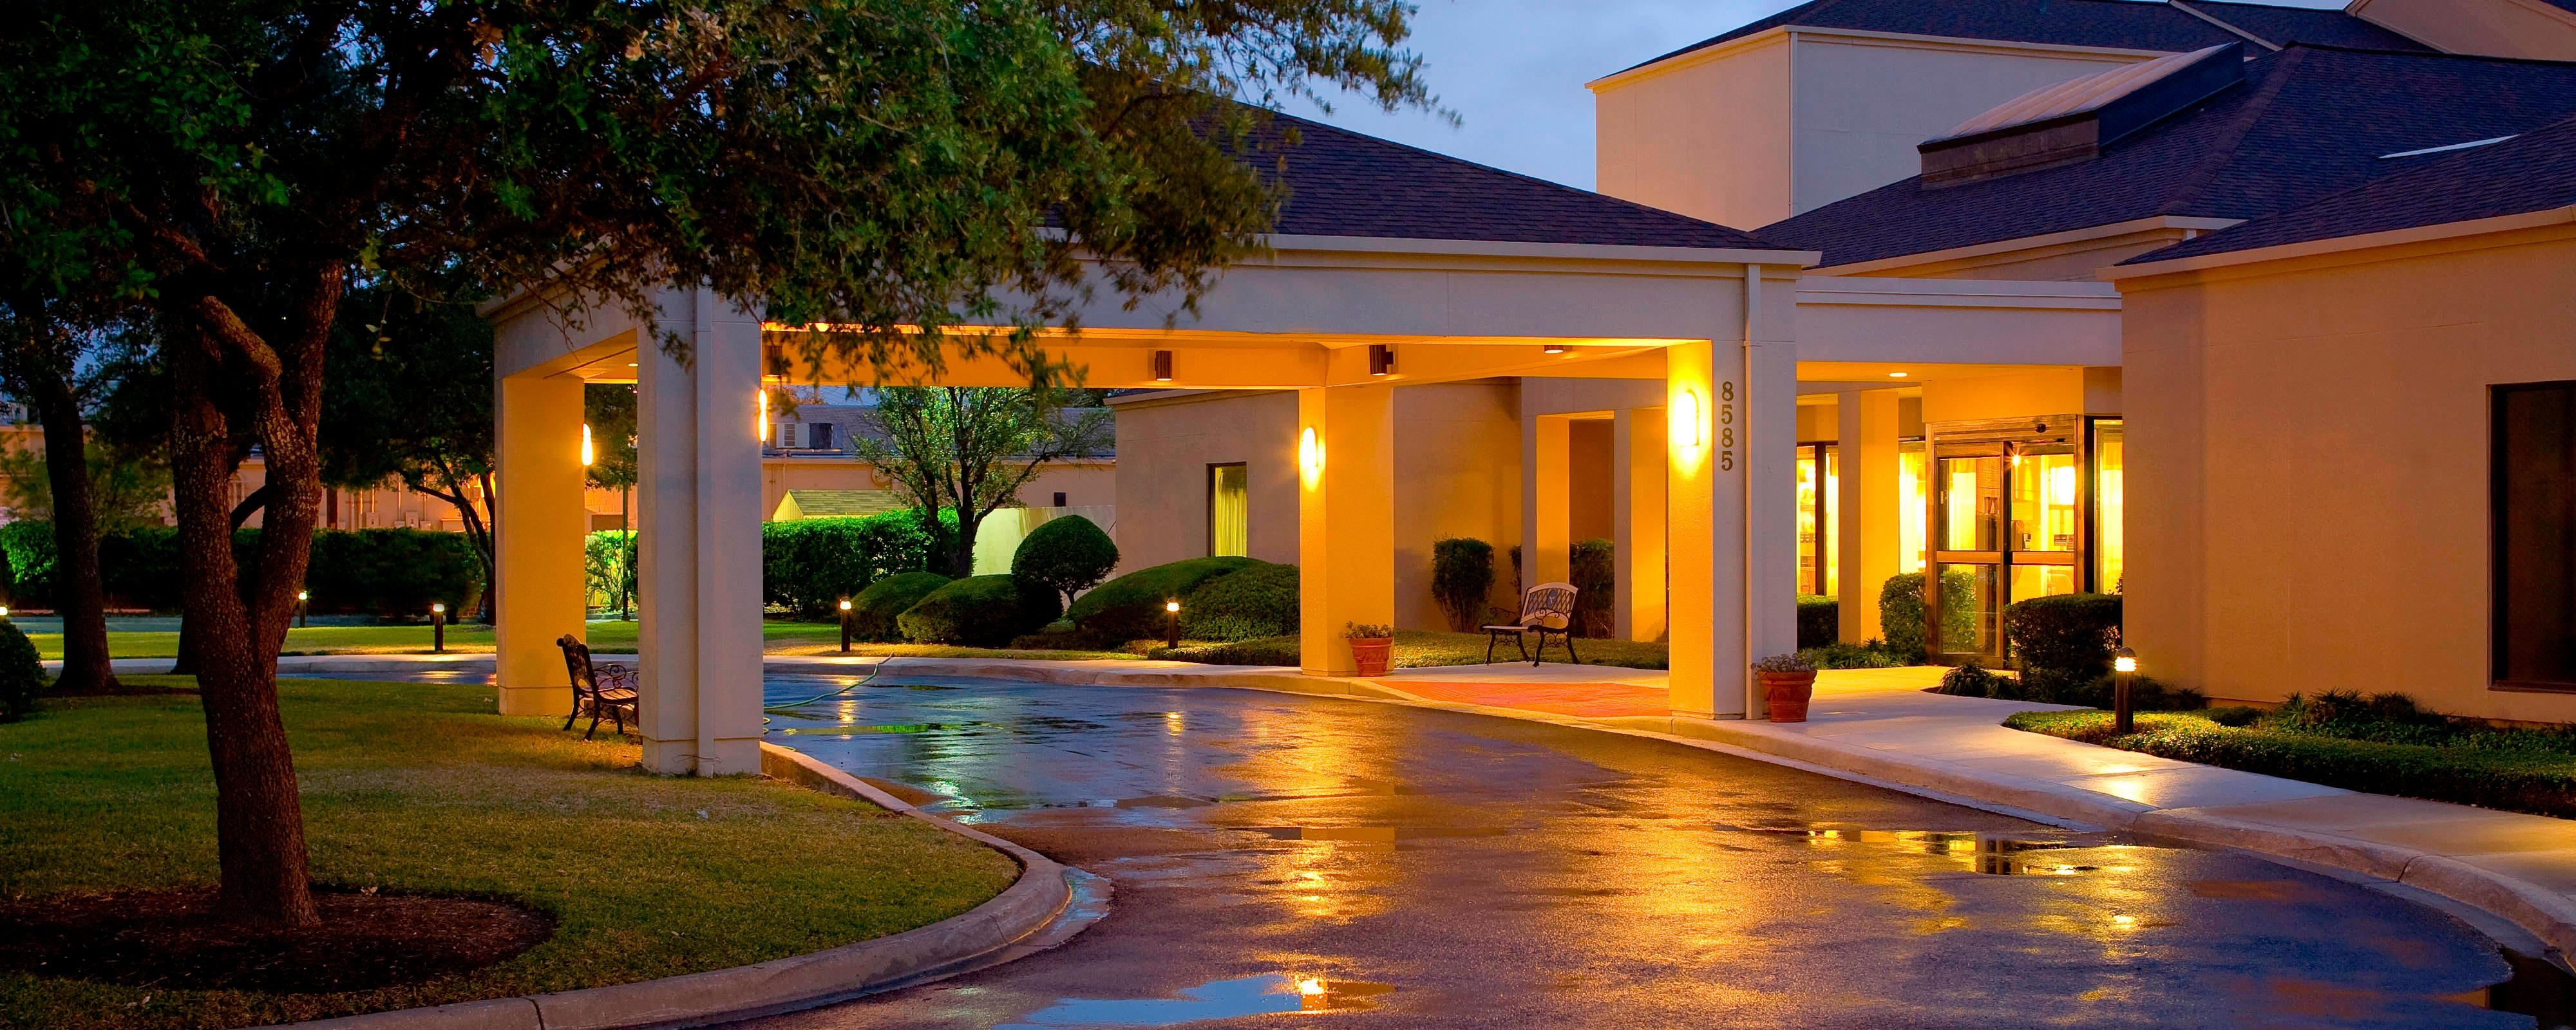 San Antonio Medical Center Hotels | Courtyard San Antonio Medical Center